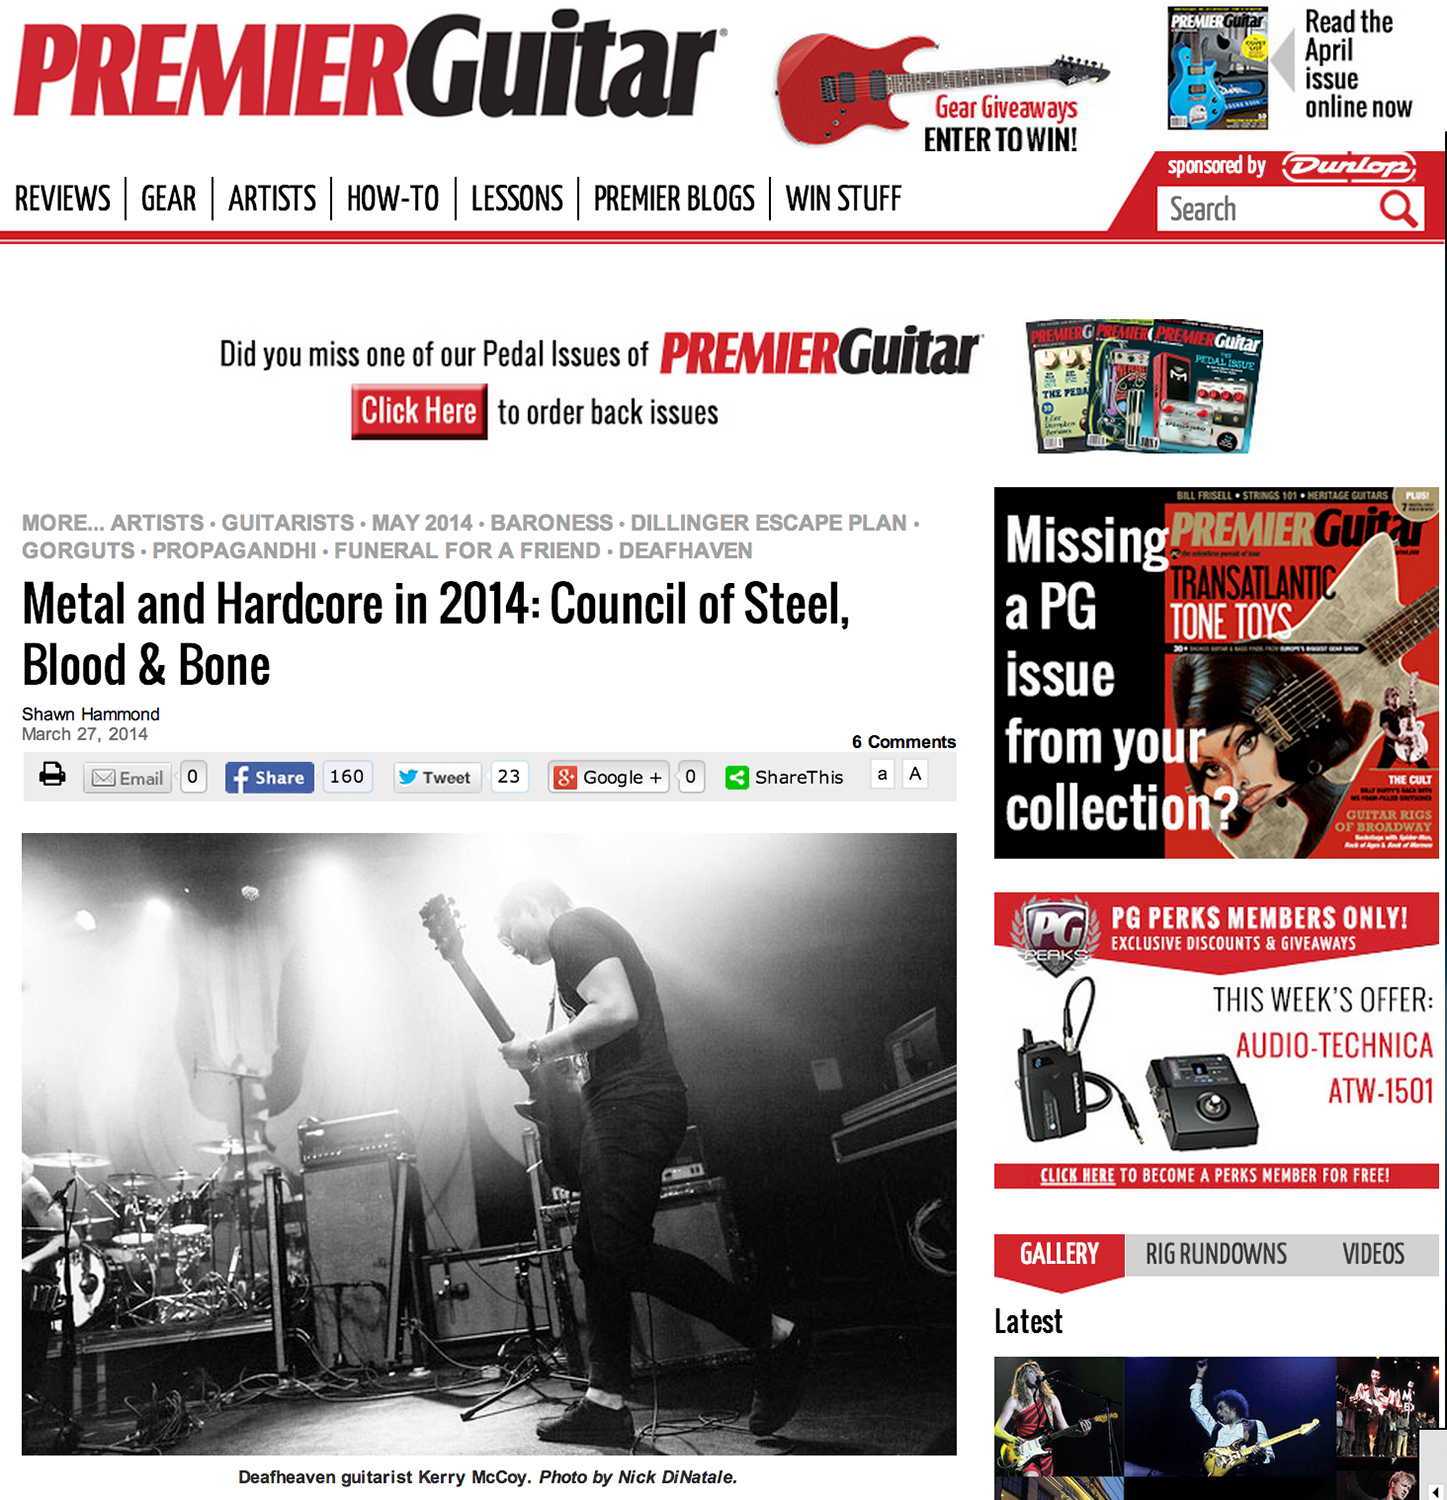 Premier Guitar - March 27th, 2014   Metal and Hardcore in 2014: Council of Steel, Blood & Bone